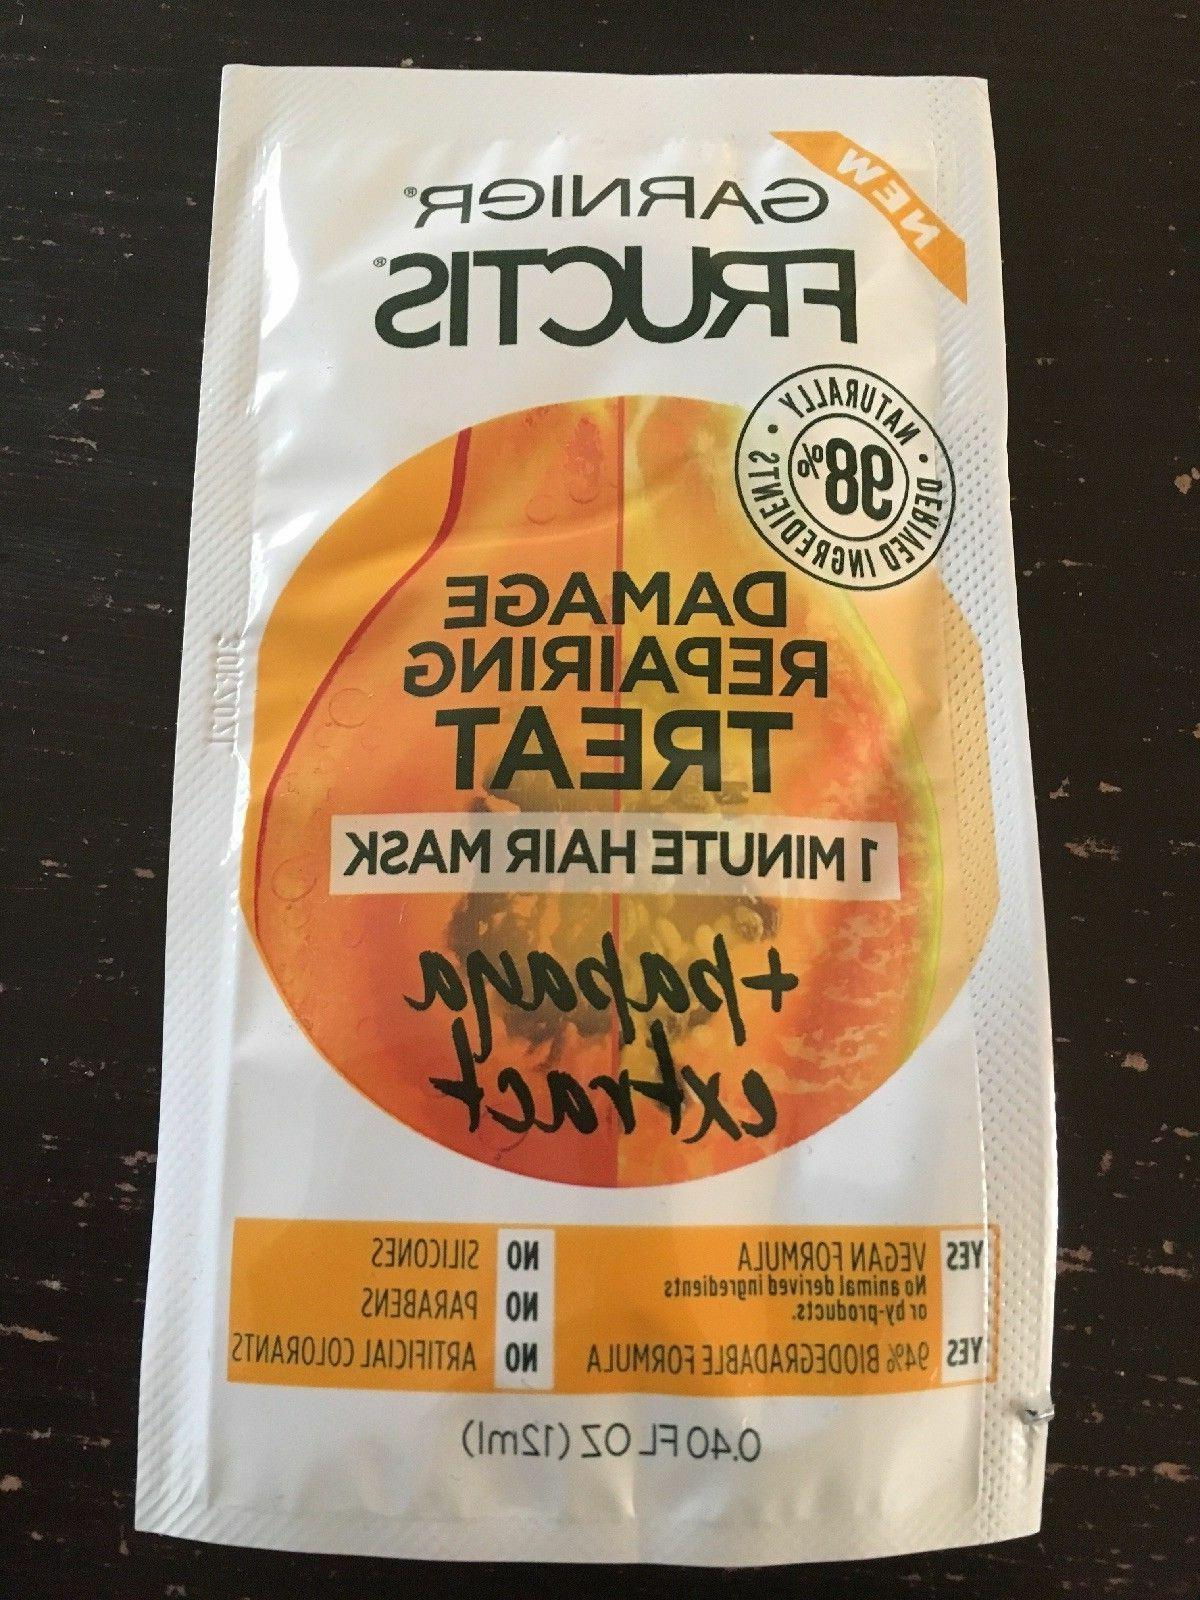 garnier damage repairing treat 1 minute hair